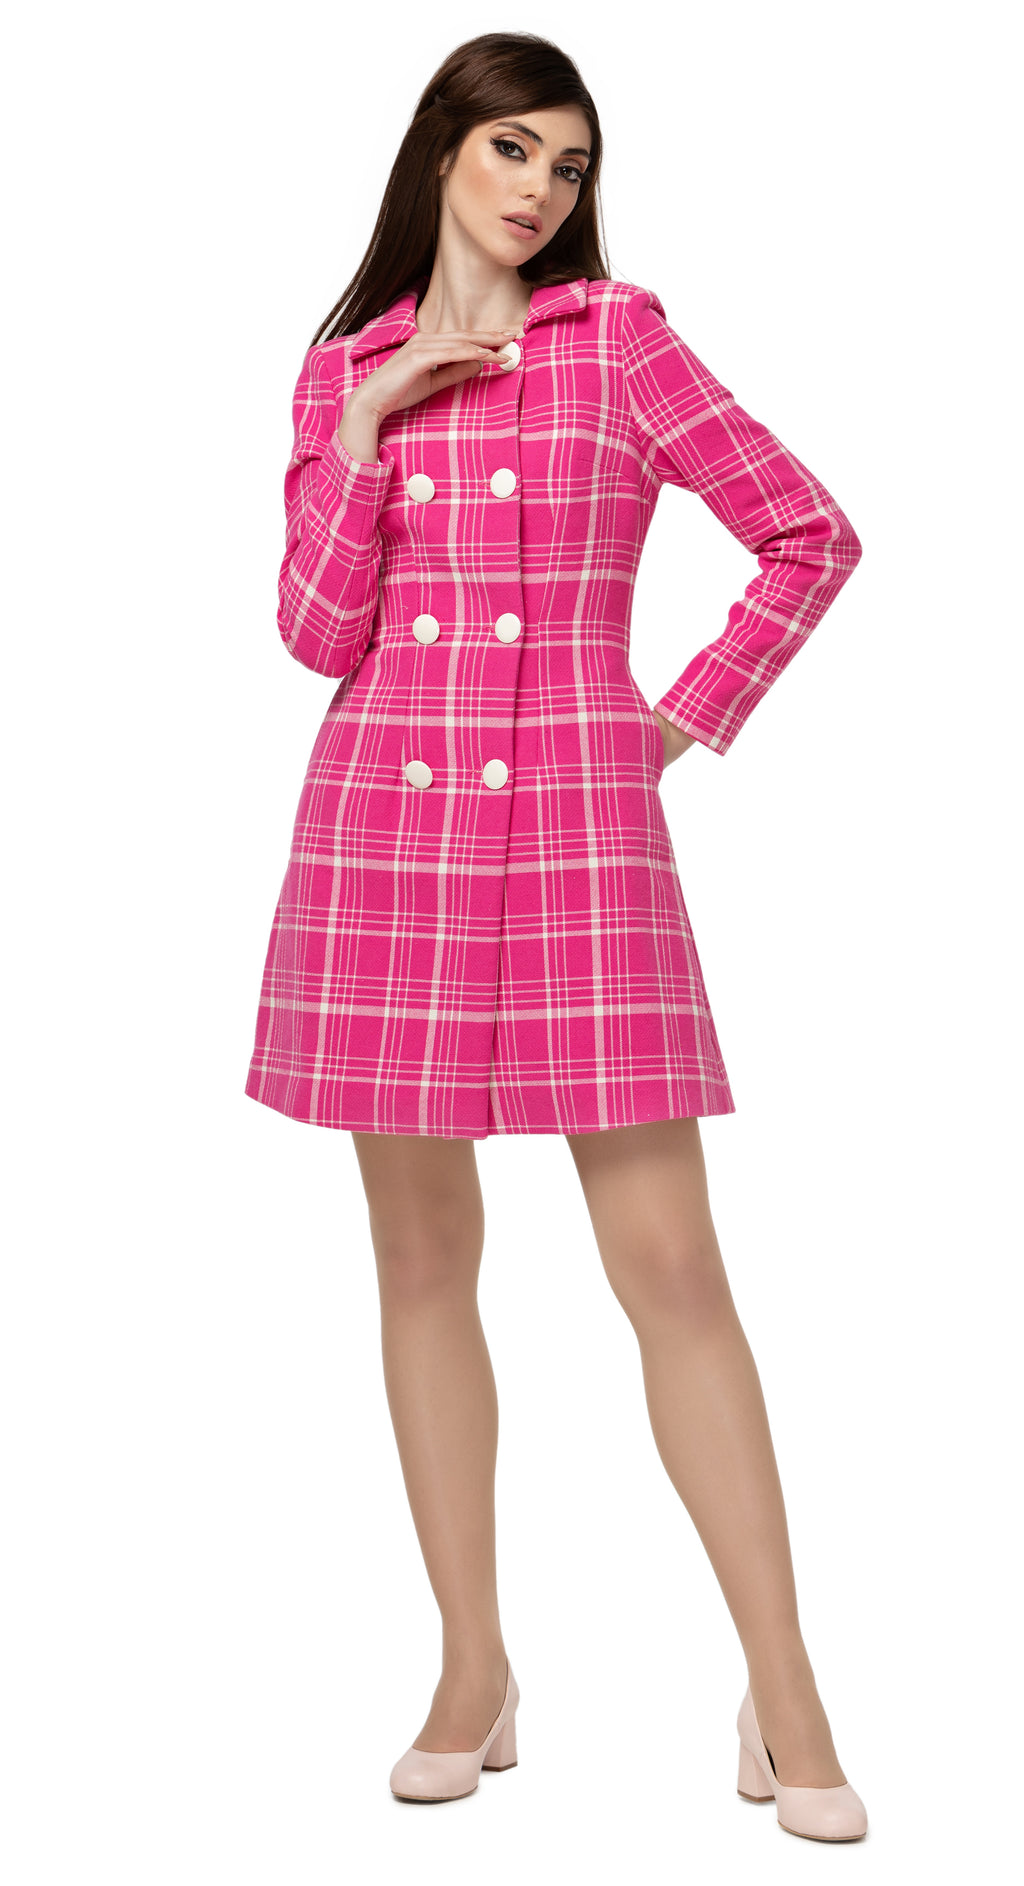 Fairweather fuchsia and light cream plaid  heavy-weight spring double breasted coat. A strikingly beautiful sixties cut with a meticulous structure. Eight light cream double breasted closure, collar and square neck line.   Pairs perfectly with MSMSSP2021-24 for a high fashion, cool and confident look.  Limited edition.  This piece is also available for instalment payments and lay away.